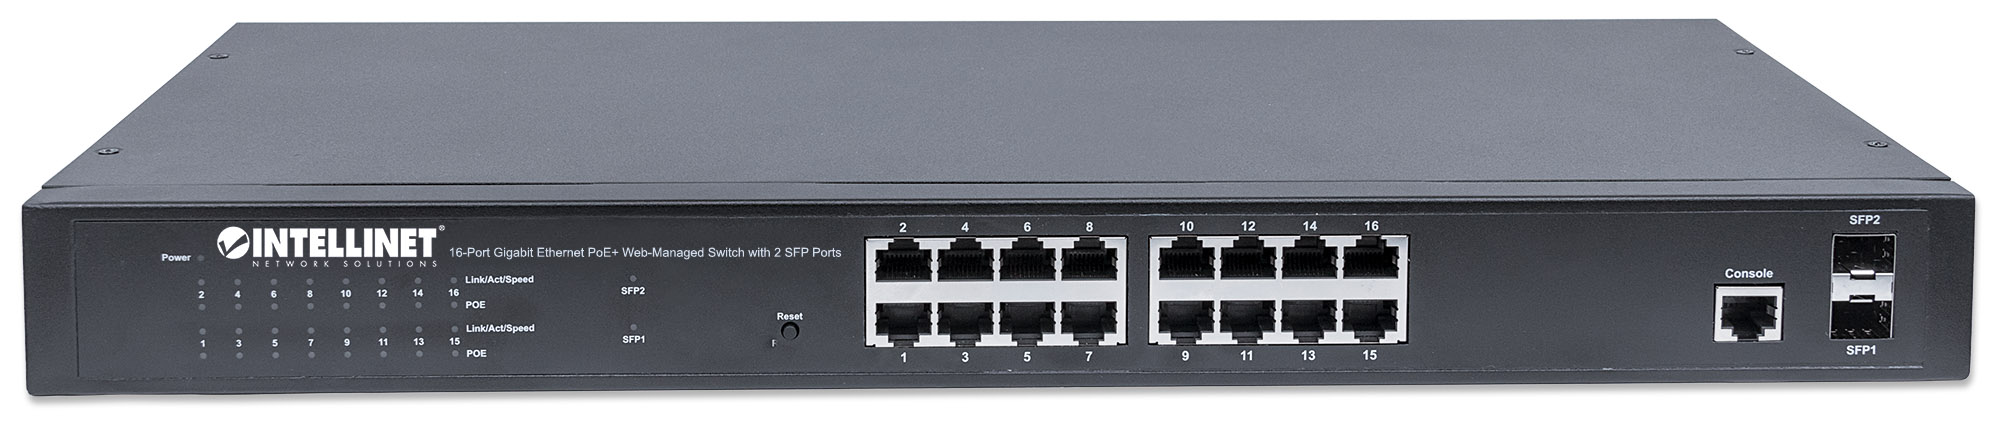 16-Port Gigabit Ethernet PoE+ Web-Managed Switch with 2 SFP Ports